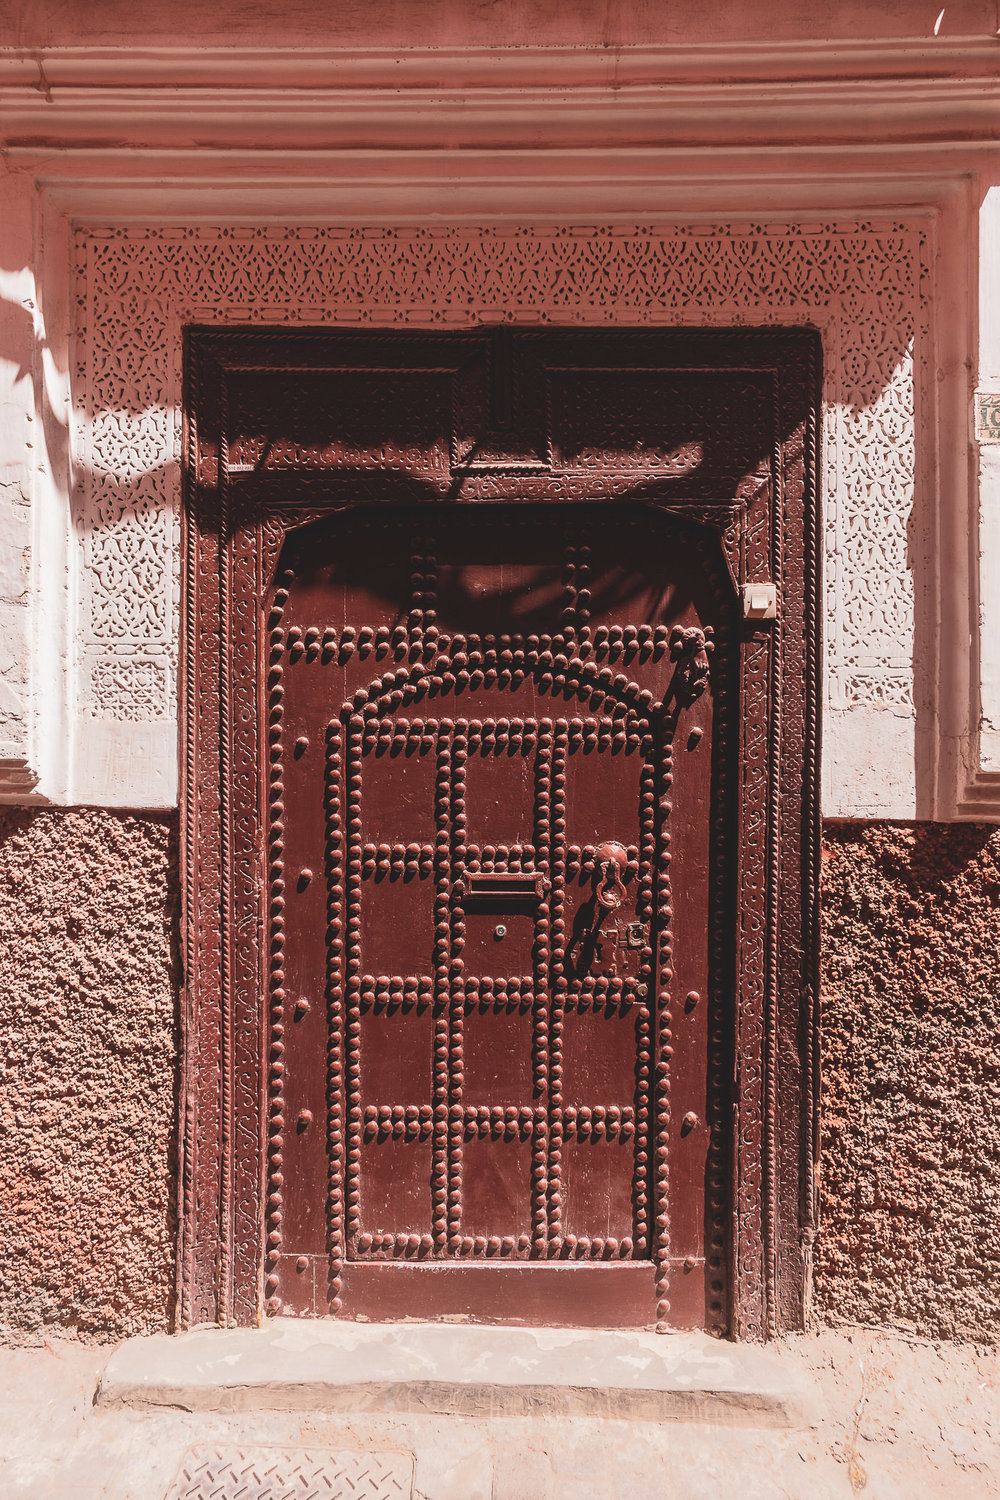 Marrakech ornate door #6